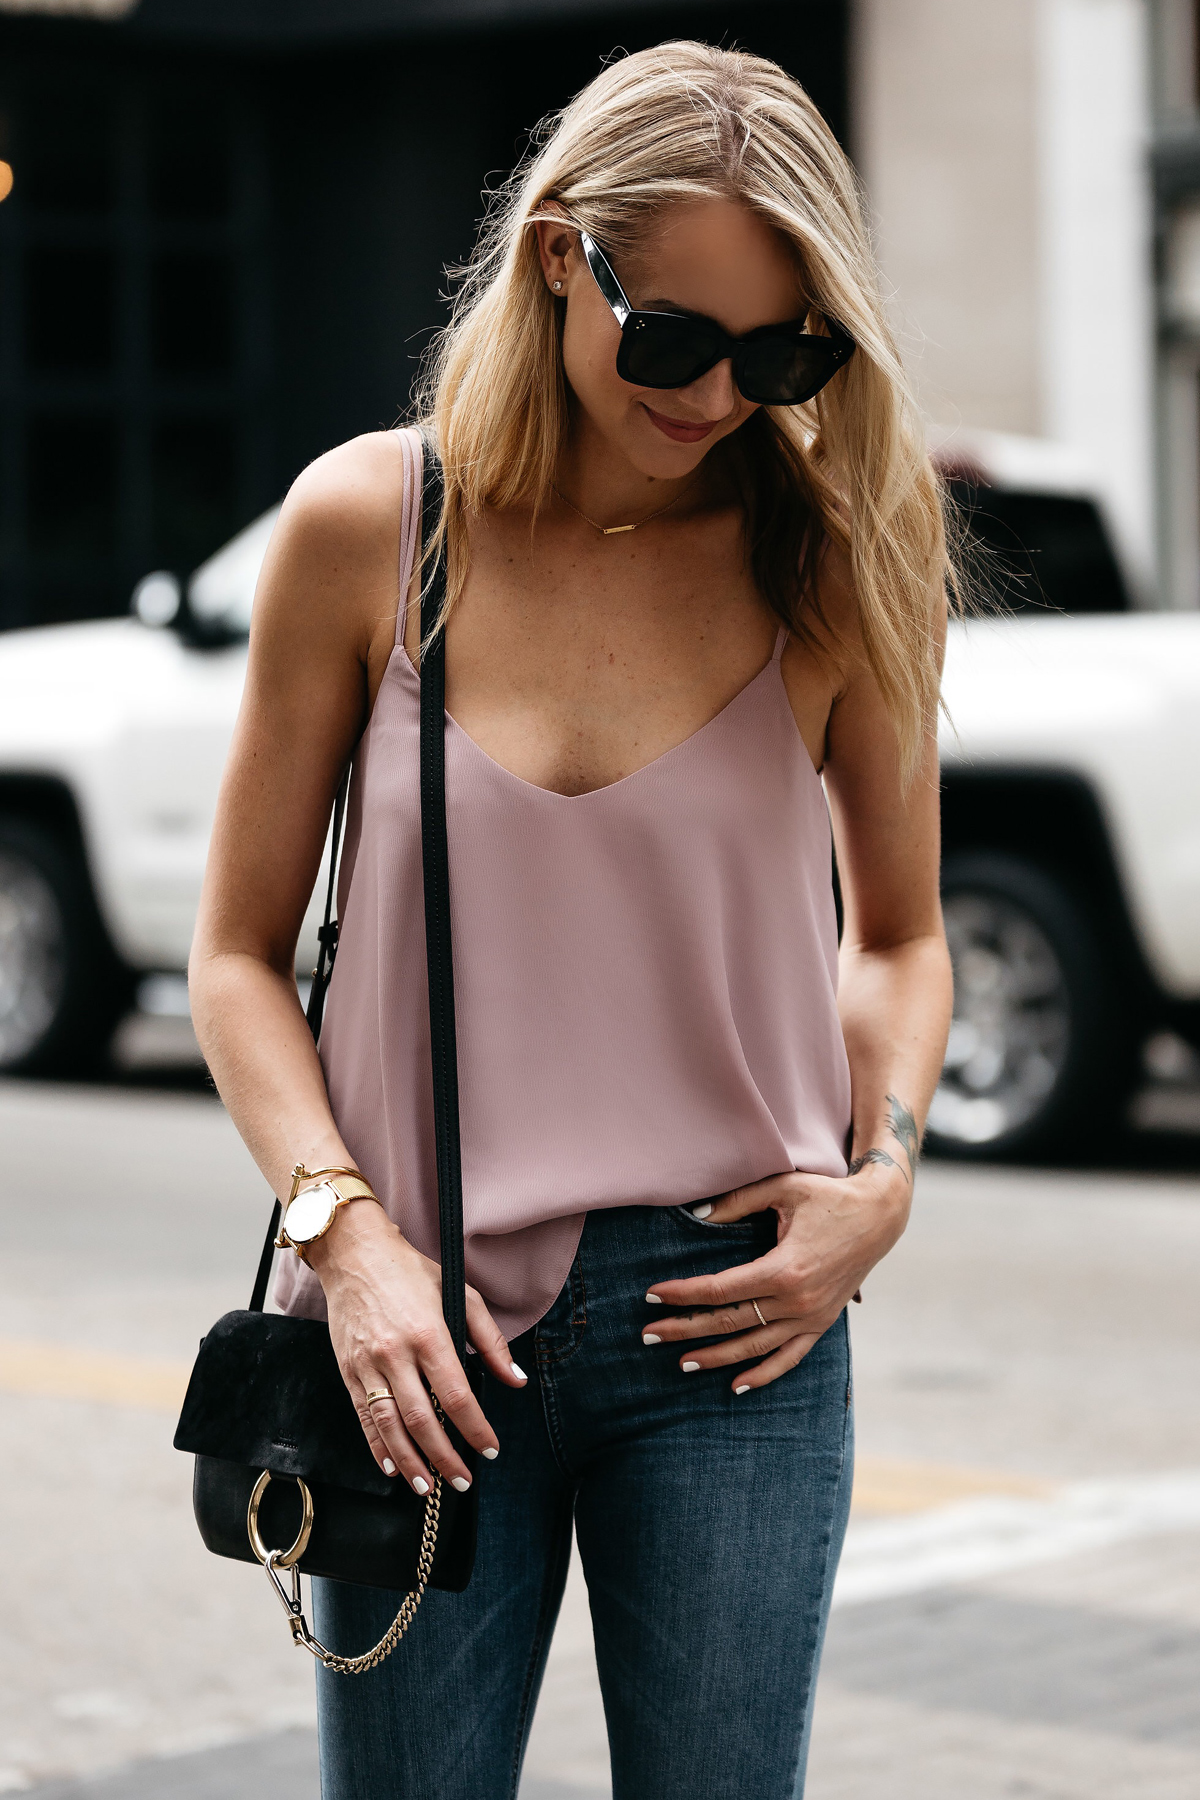 Fashion Jackson, Dallas Blogger, Fashion Blogger, Street Style, Topshop Blush Cami, Topshop Denim Ripped Skinny Jeans, Steve Madden Carrson Black Ankle Strap Heeled Sandals, Chloe Faye Handbag